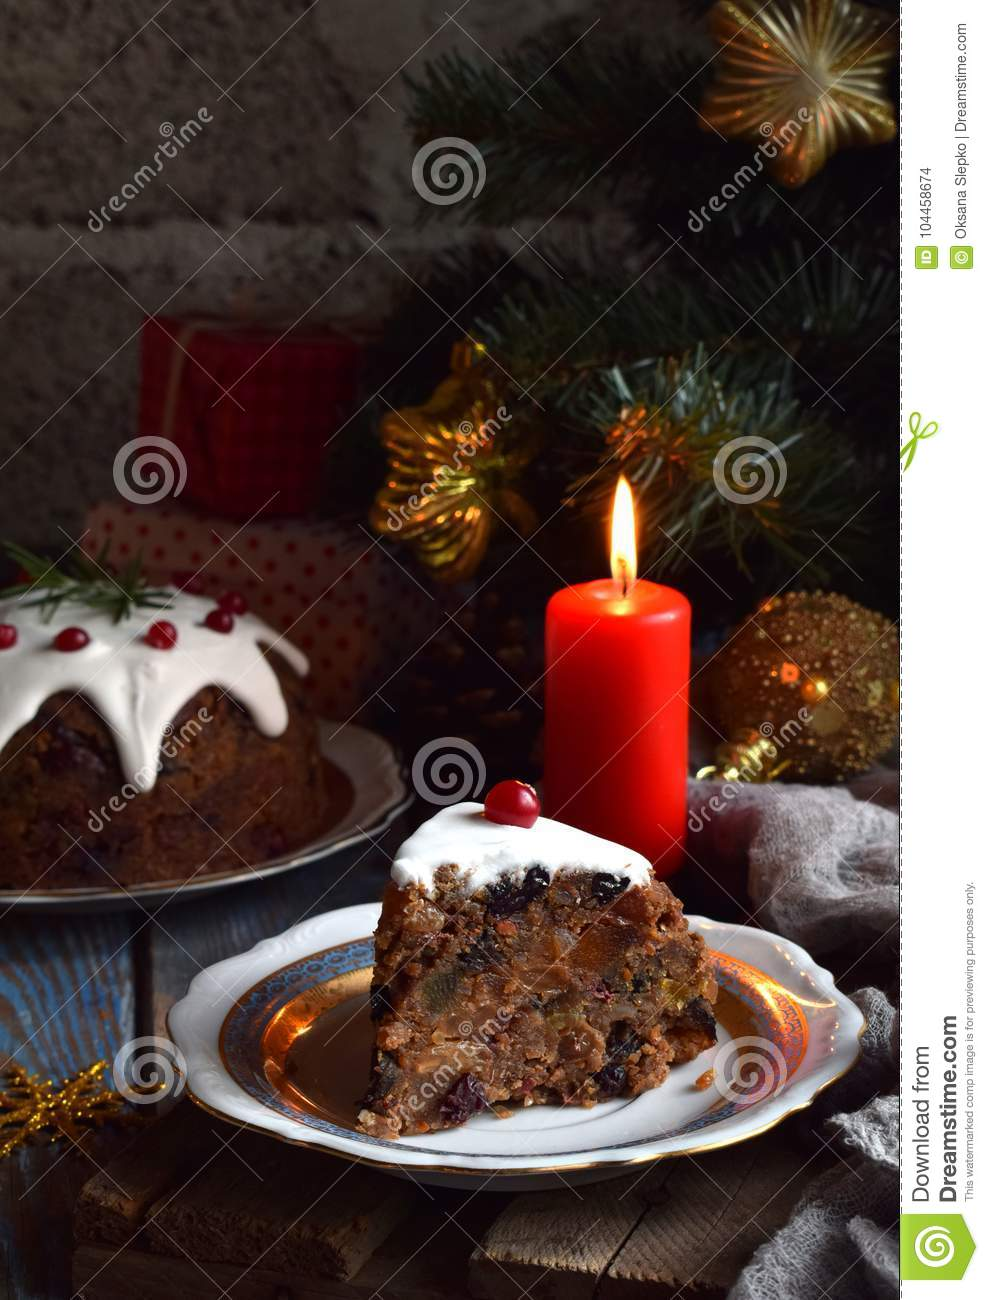 Traditional english Christmas steamed pudding with winter berries, dried fruits, nut in festive setting with Xmas tree and burning